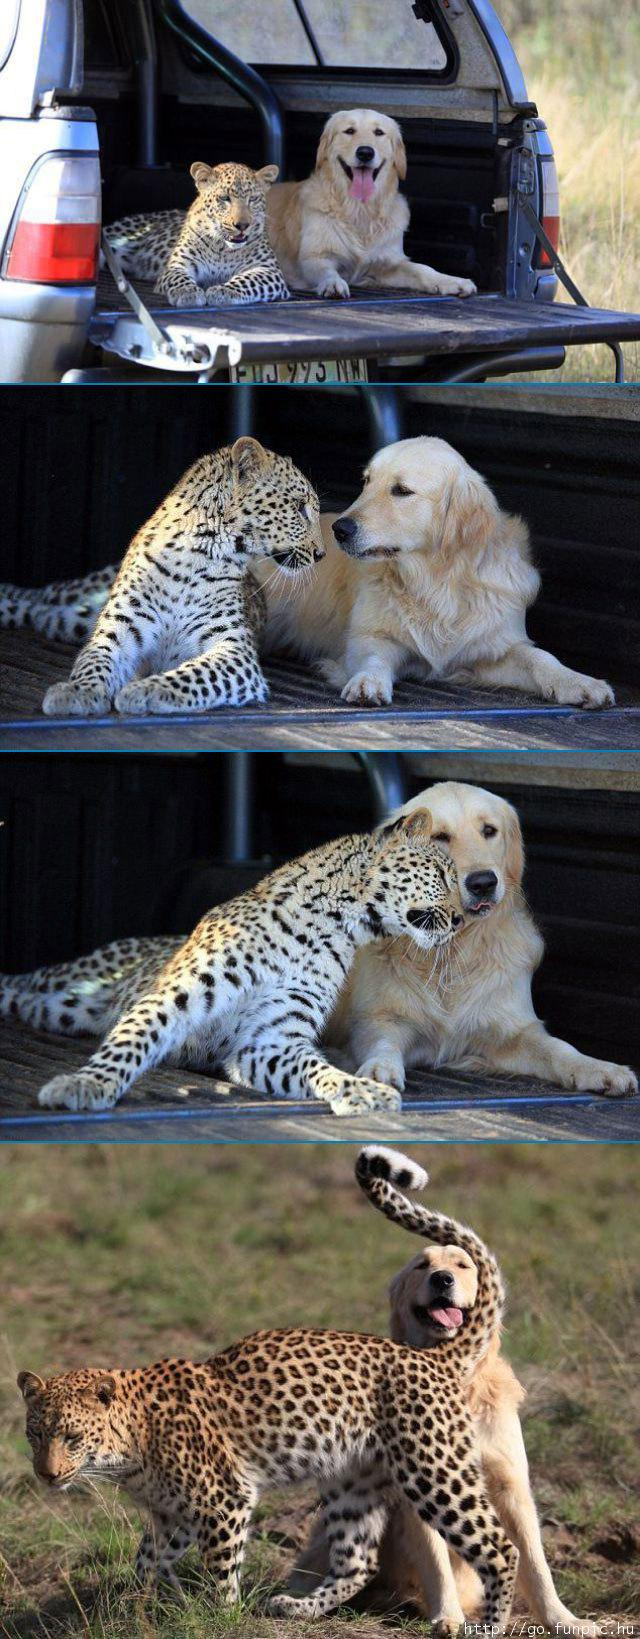 Best Friends Cheetah and Labrador Dog Pictures